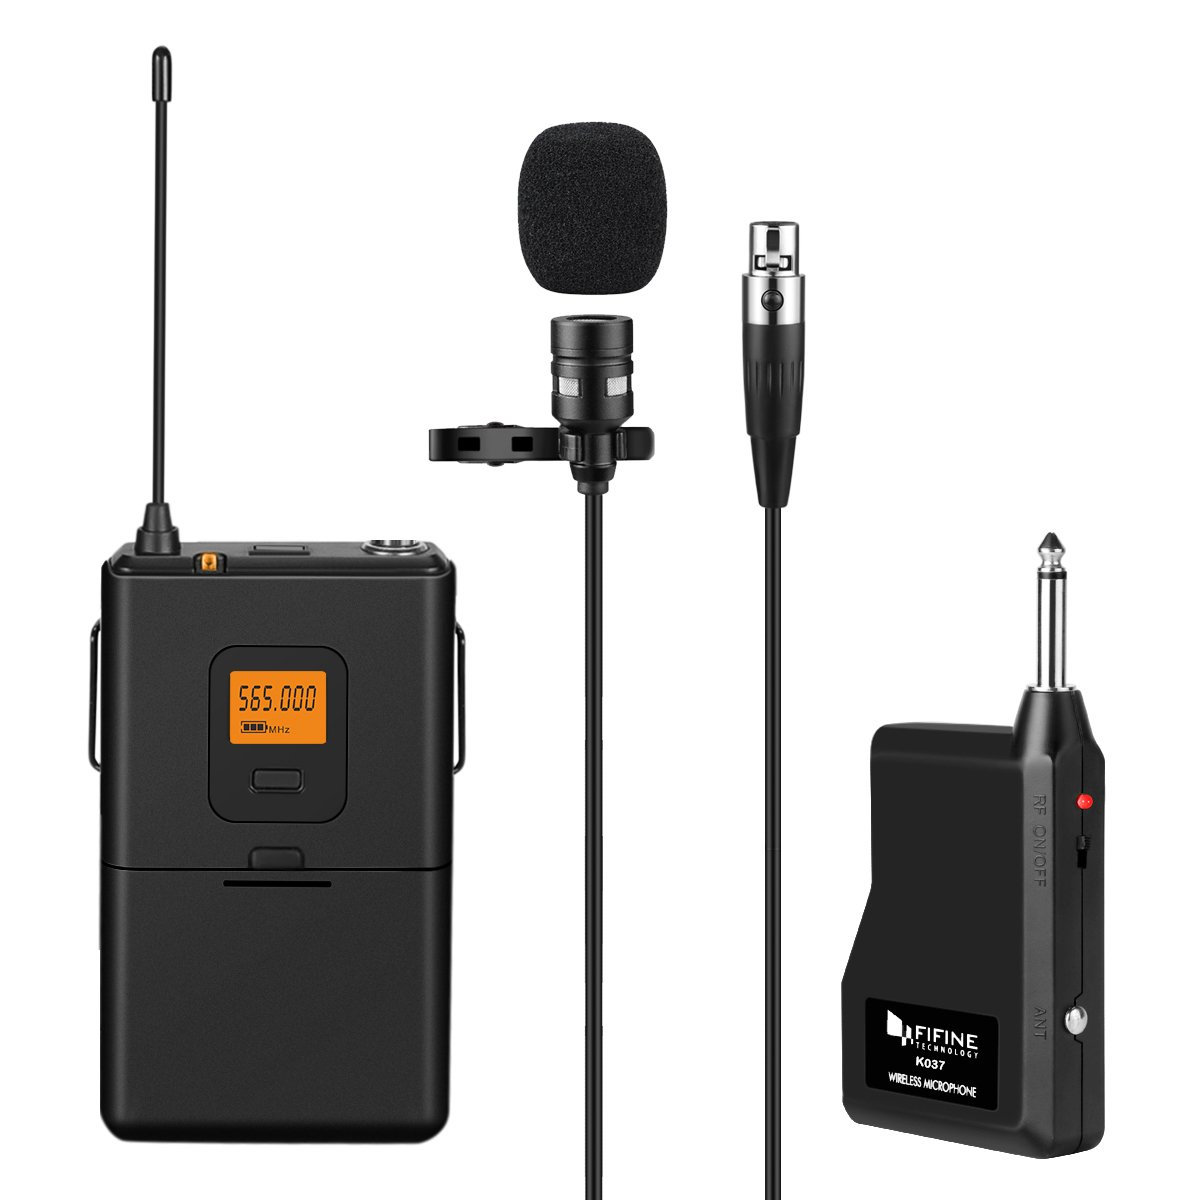 Fifine 20-Channel UHF Wireless Lavalier Lapel Microphone System with Bodypack Transmitter, Mini XLR Female Lapel Mic and Portable Receiver, 1/4 Inch Output. Perfect for Live Performance. (K037) FBA_ABCD170003